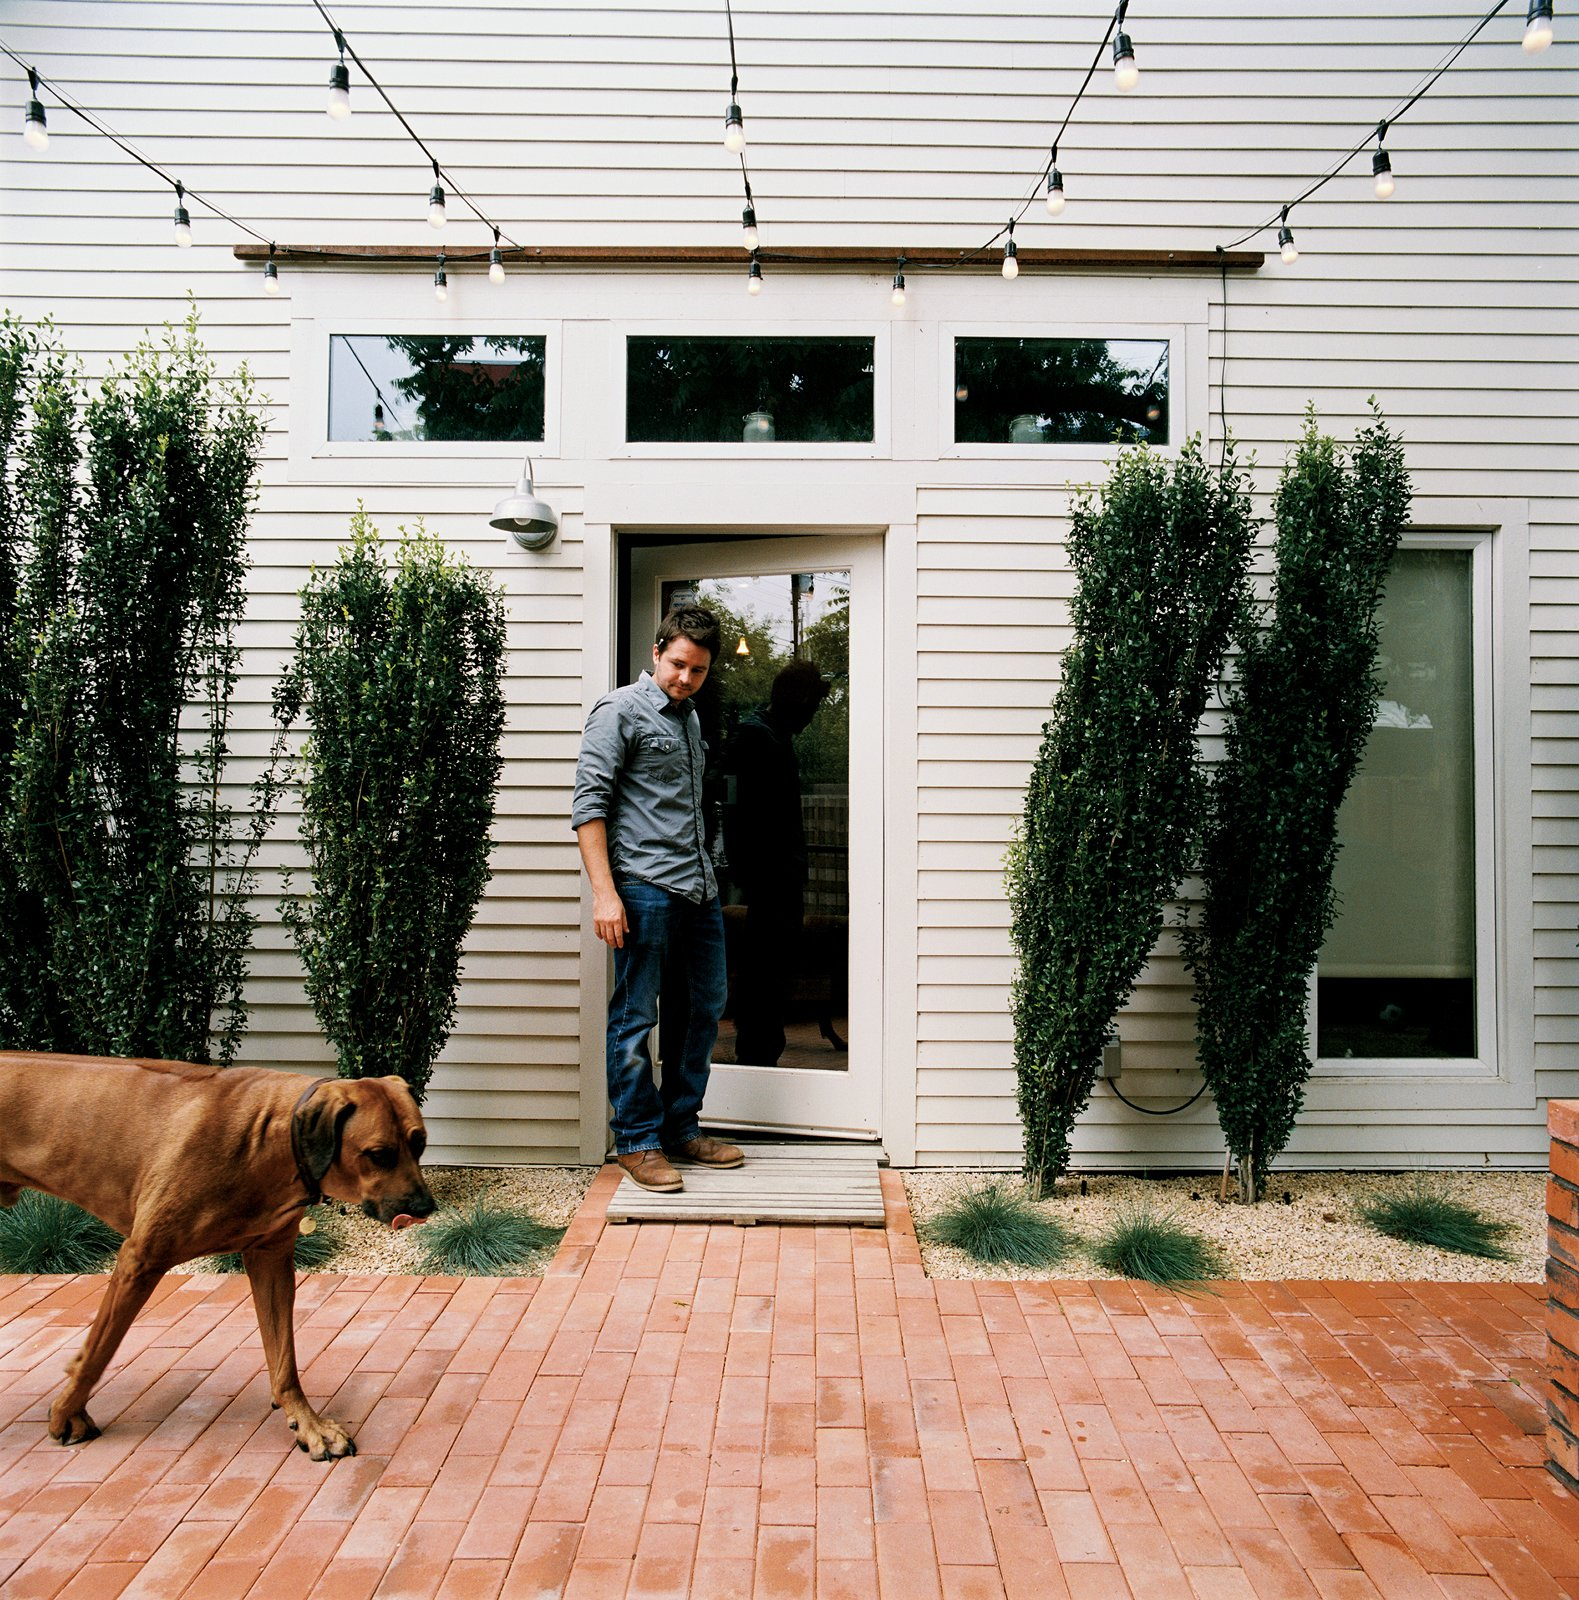 Outdoor, Back Yard, Trees, Shrubs, Pavers Patio, Porch, Deck, and Hanging Lighting From the side door of his restored two-bedroom bungalow, Dollahite watches his   dog West inspect the newly installed low-maintenance landscaping and brick patio.  Photo 8 of 25 in Leap Into the Year of the Dog With These 25 Pups in the Modern World